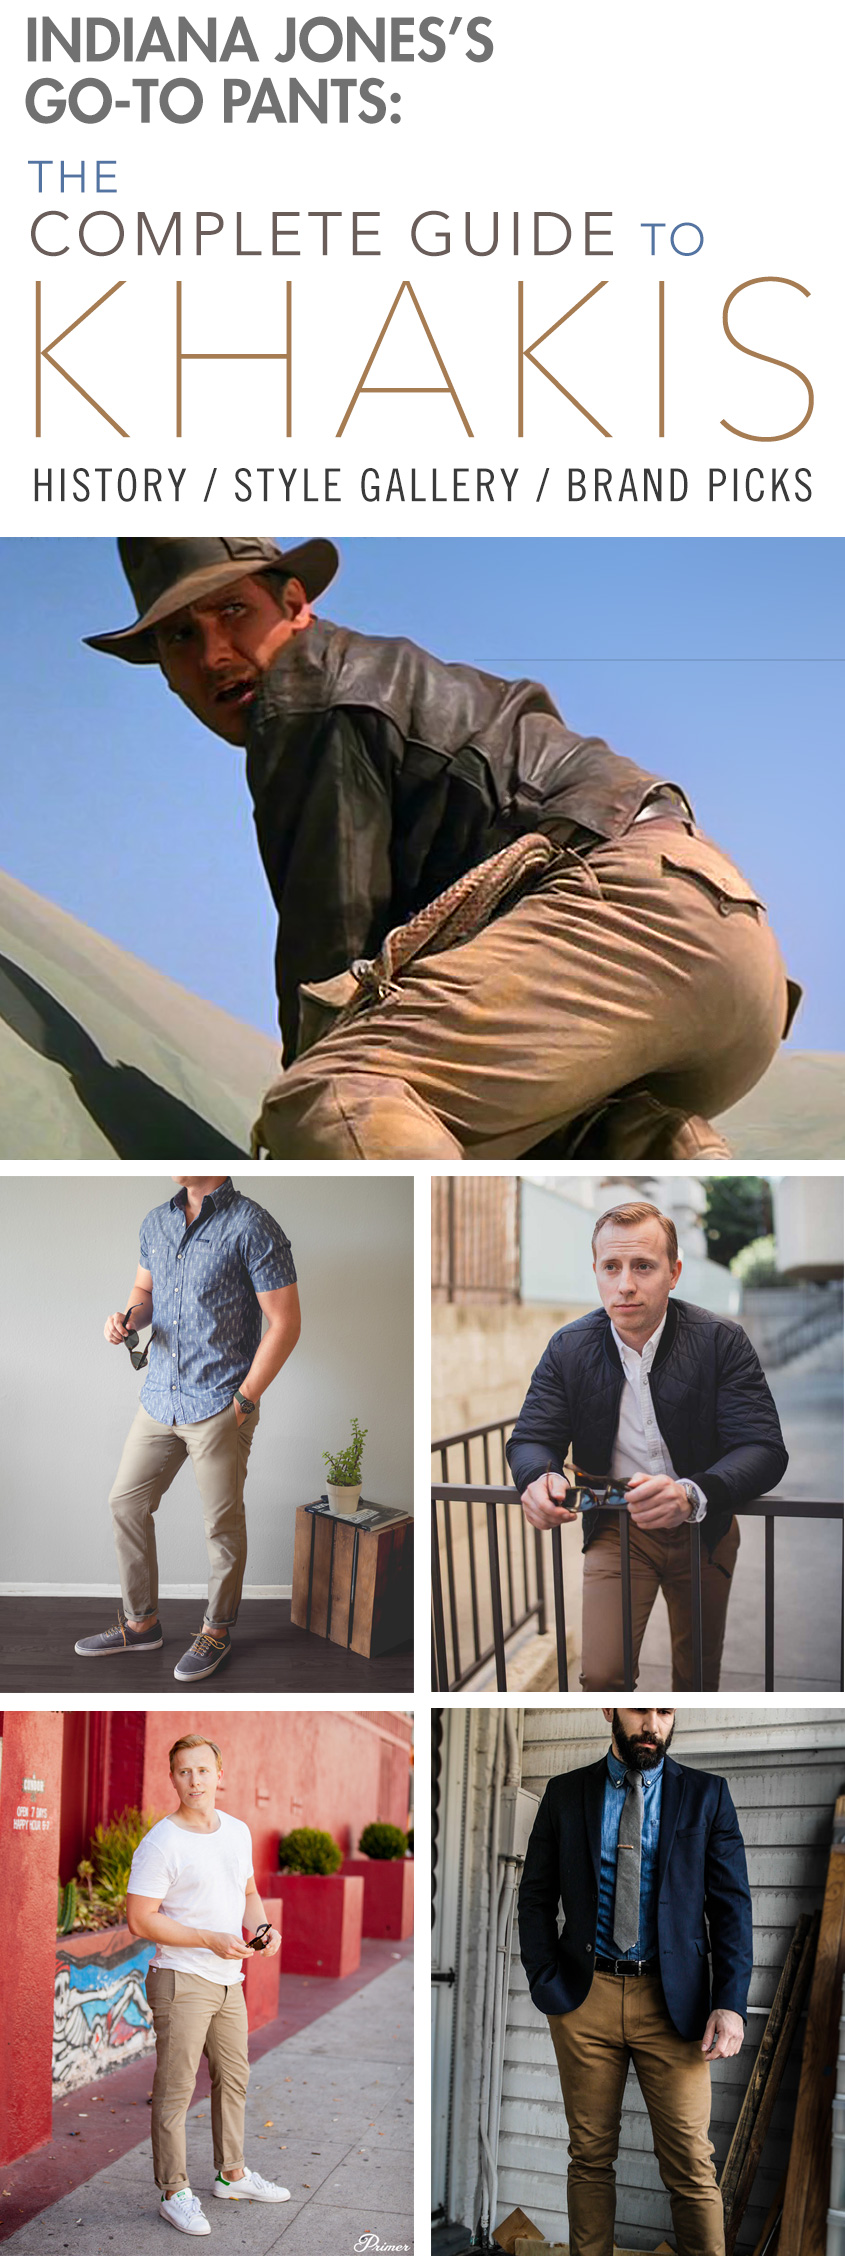 Indiana Jones's Go-to Pants: A Complete Guide to Khakis - History / Outfit Inspiration Gallery / Brand Picks